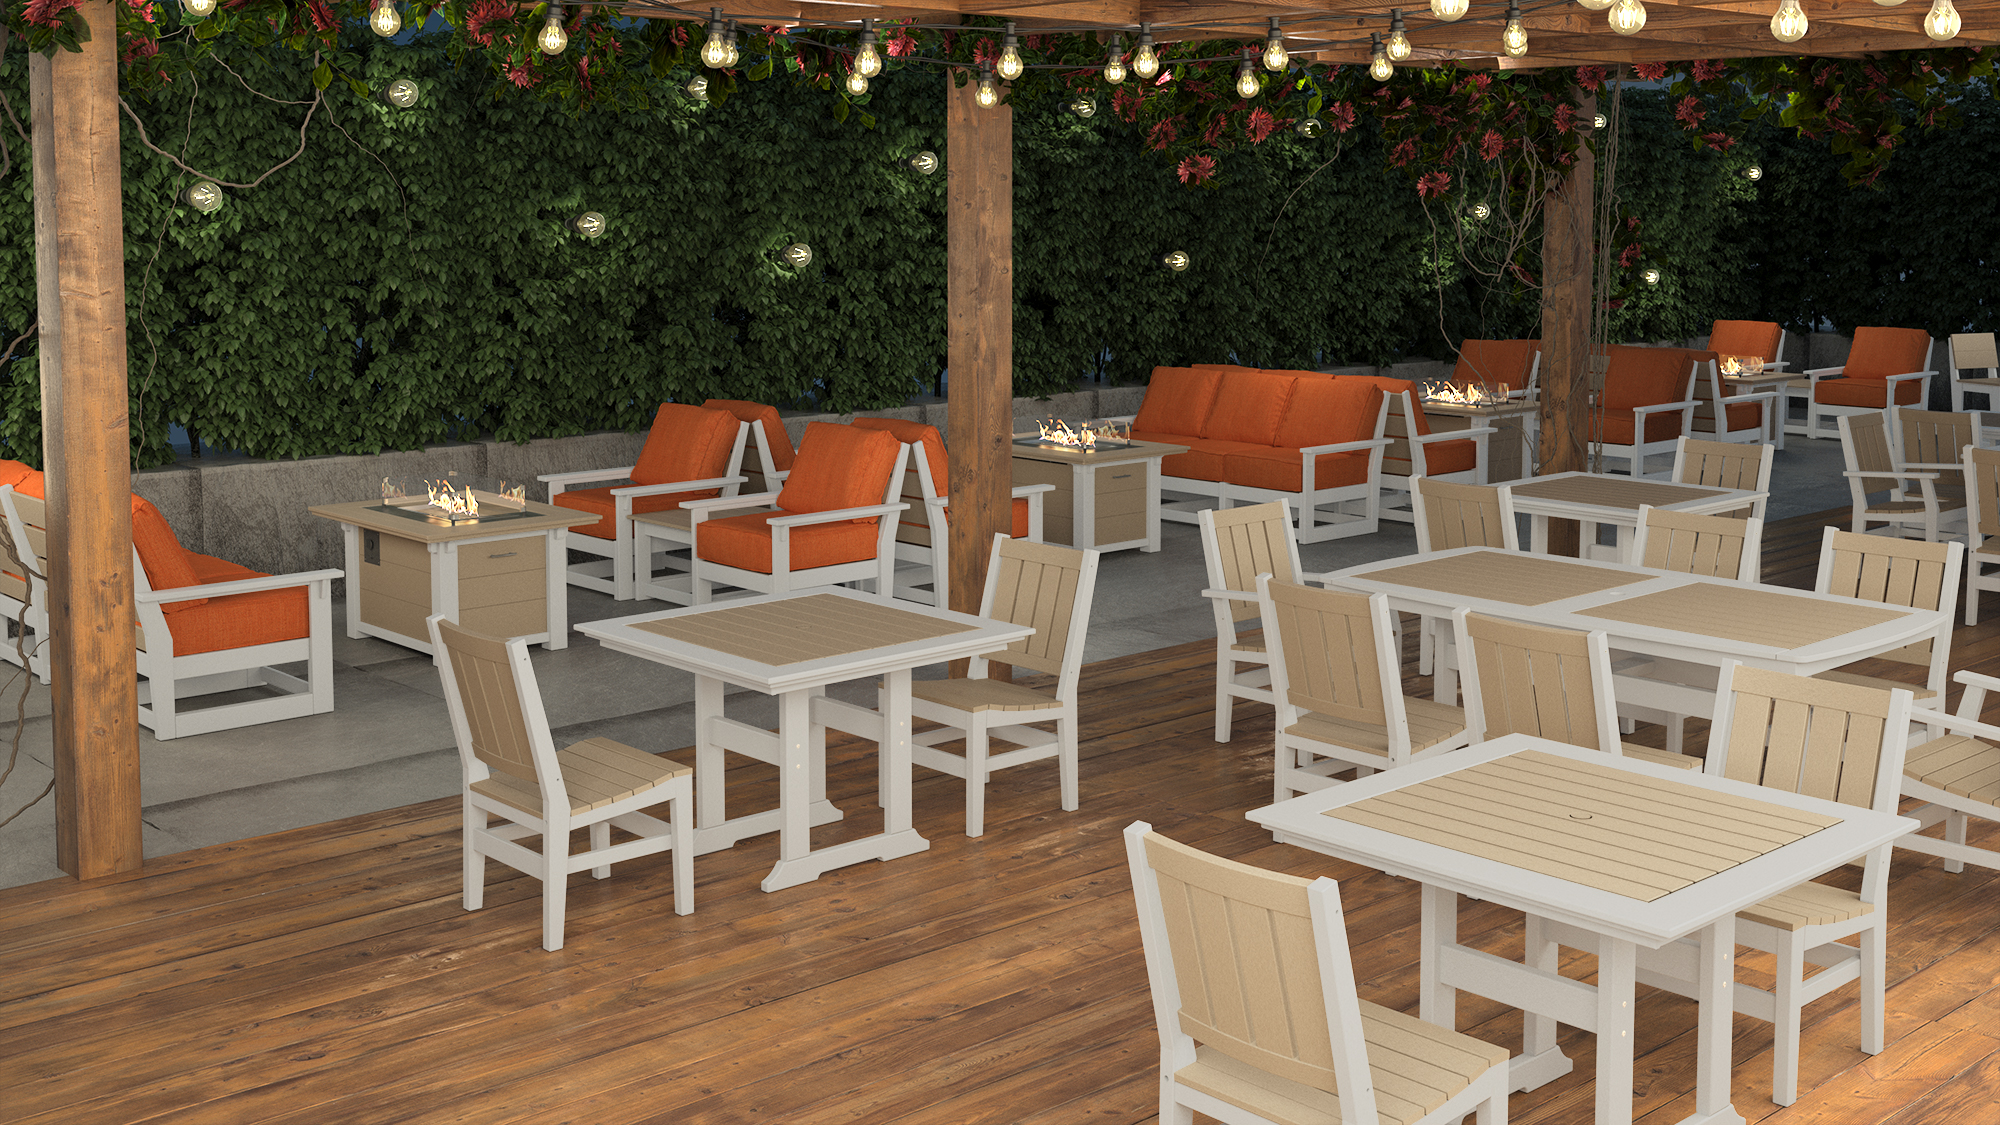 Bristol Dining Tables with Milano Side Chairs, Hudson Deep Seating and Rectangular Fire Tables